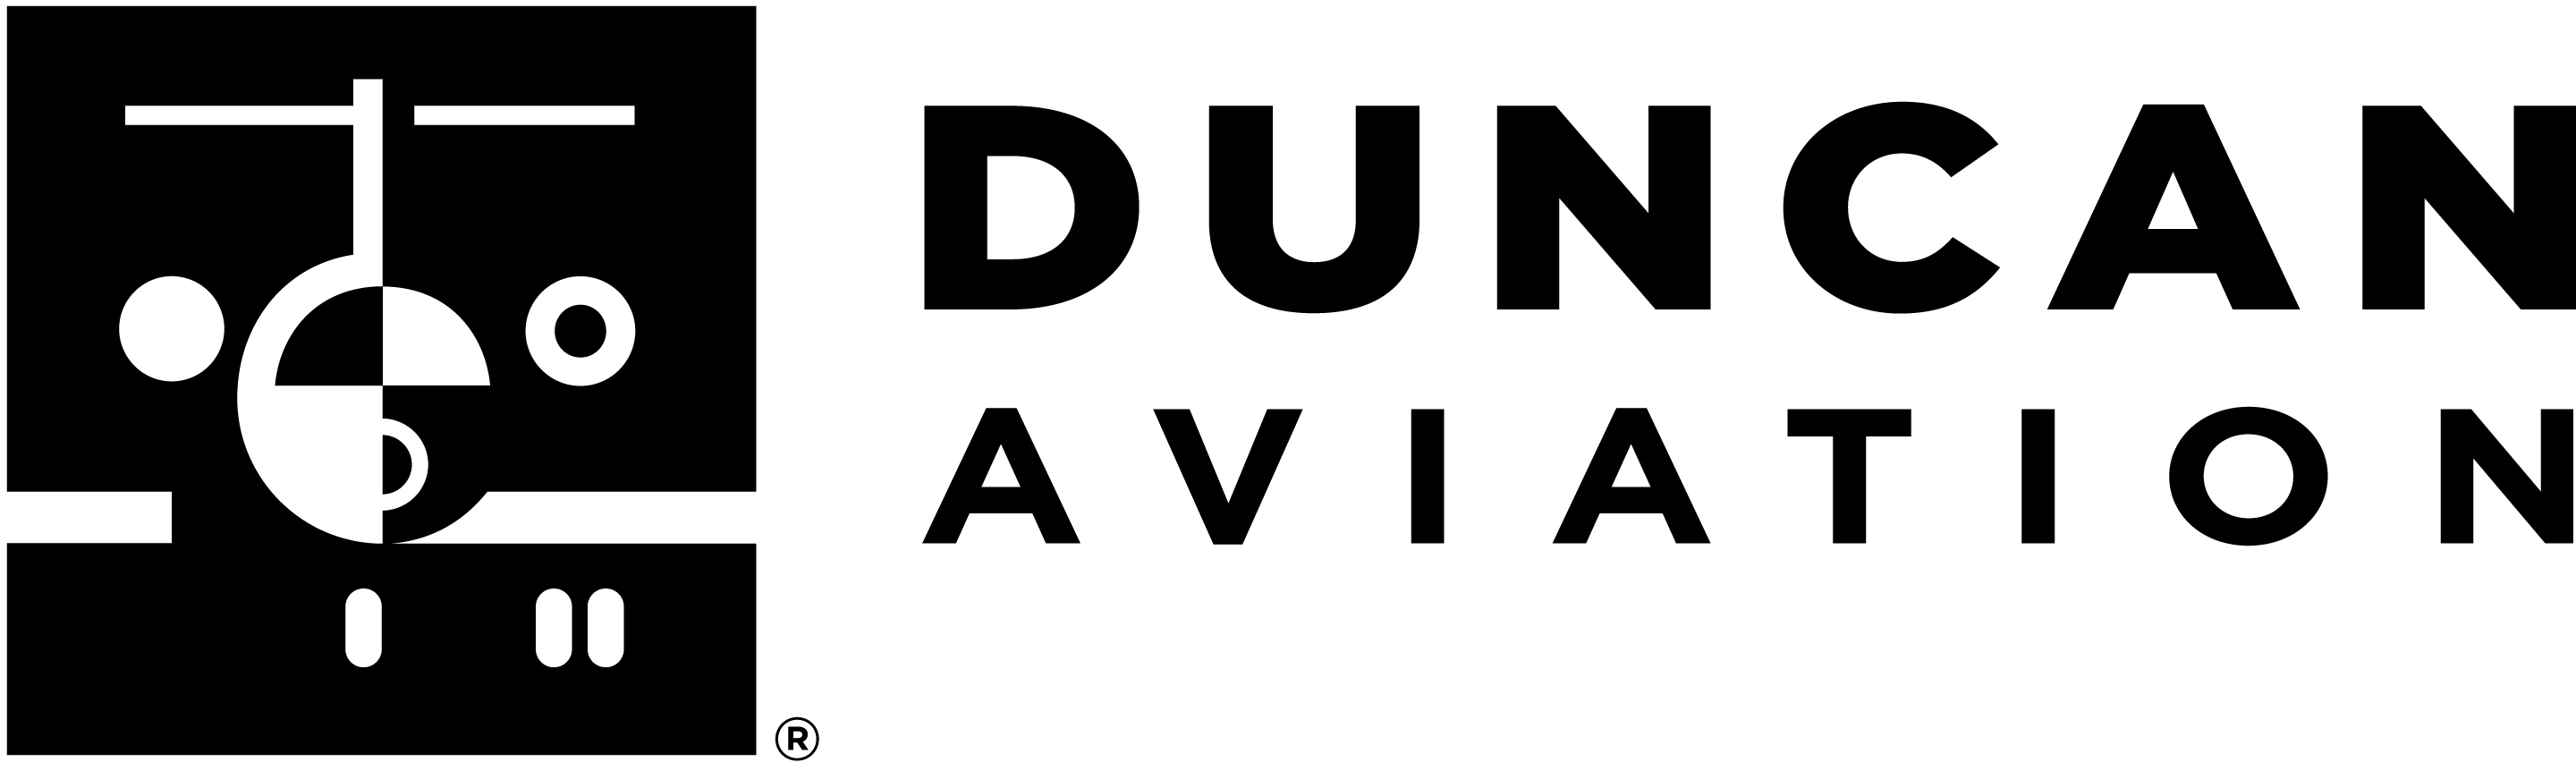 Duncan Aviation, Inc. logo